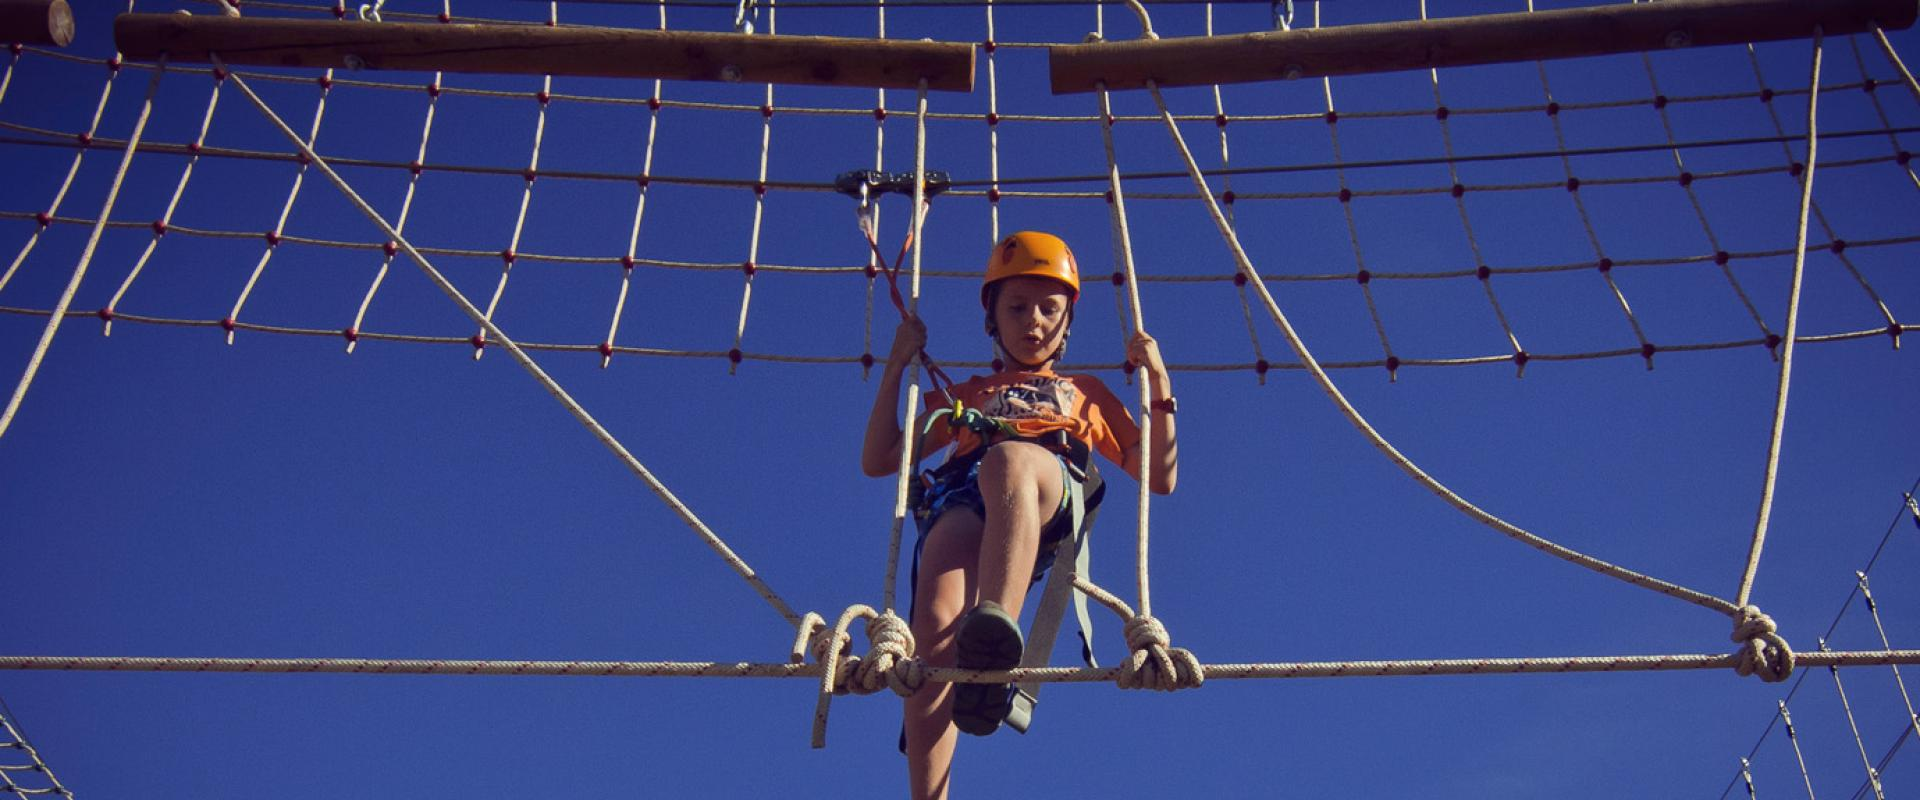 San Felices de los Gallegos Multi-adventure Park